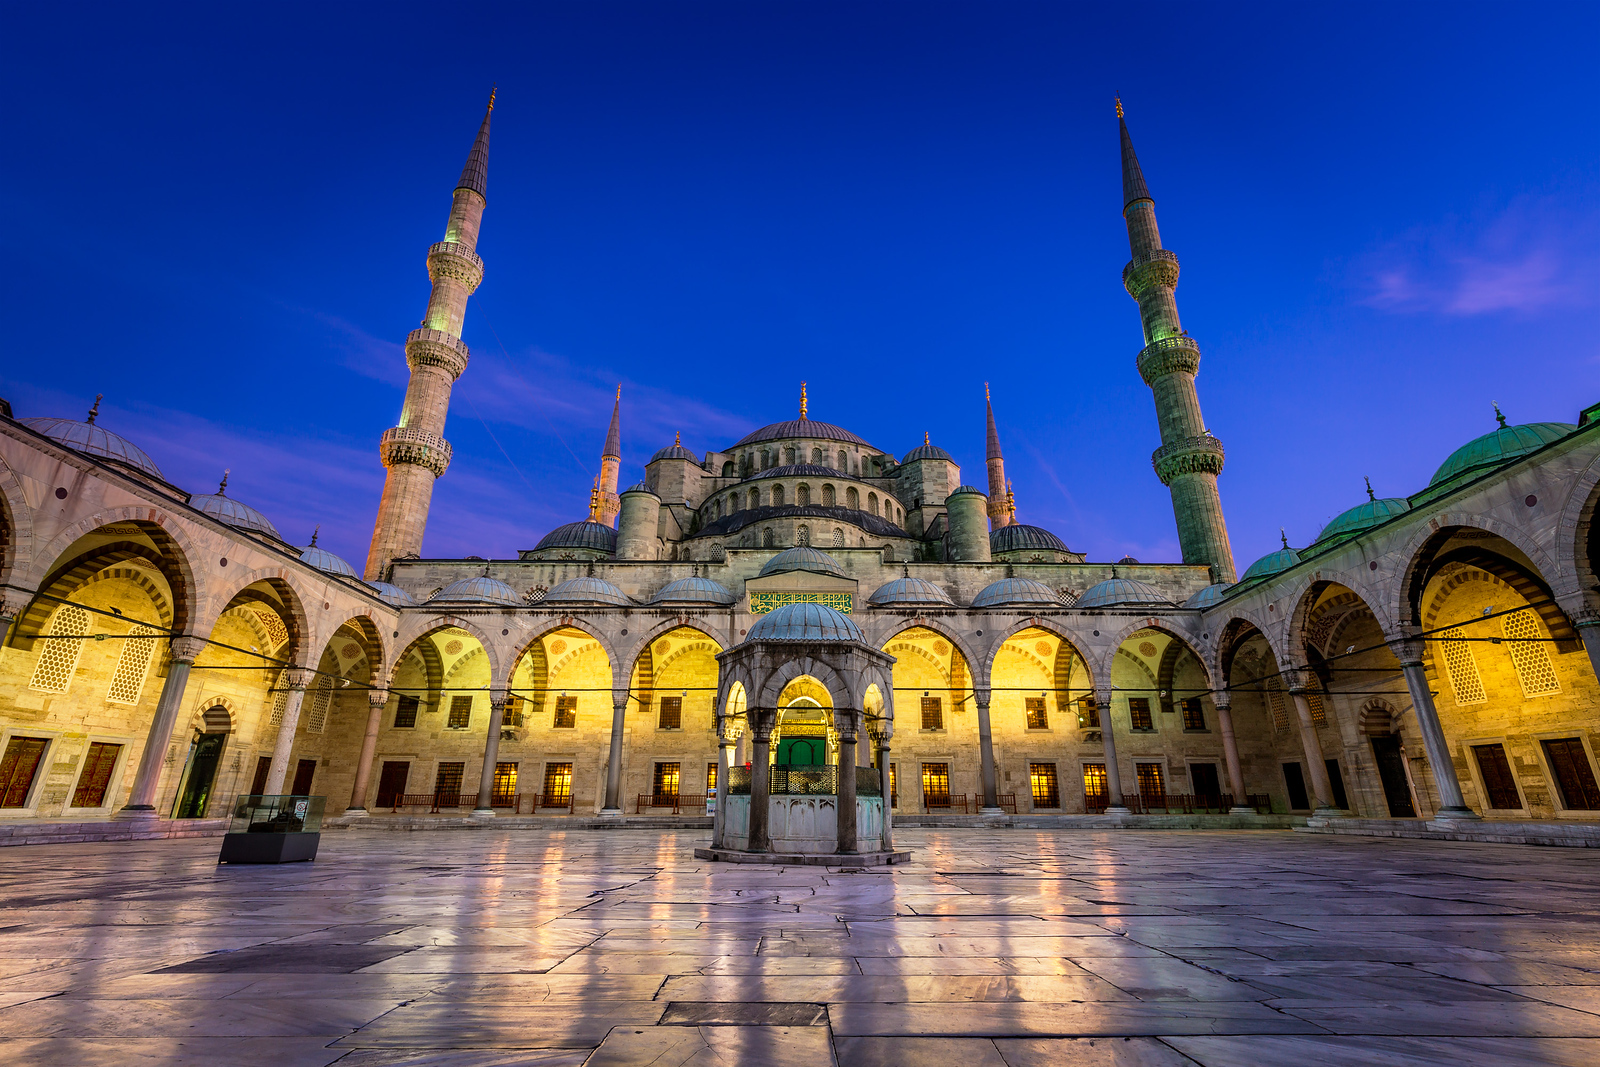 Blue Mosque / Istanbul, Turkey